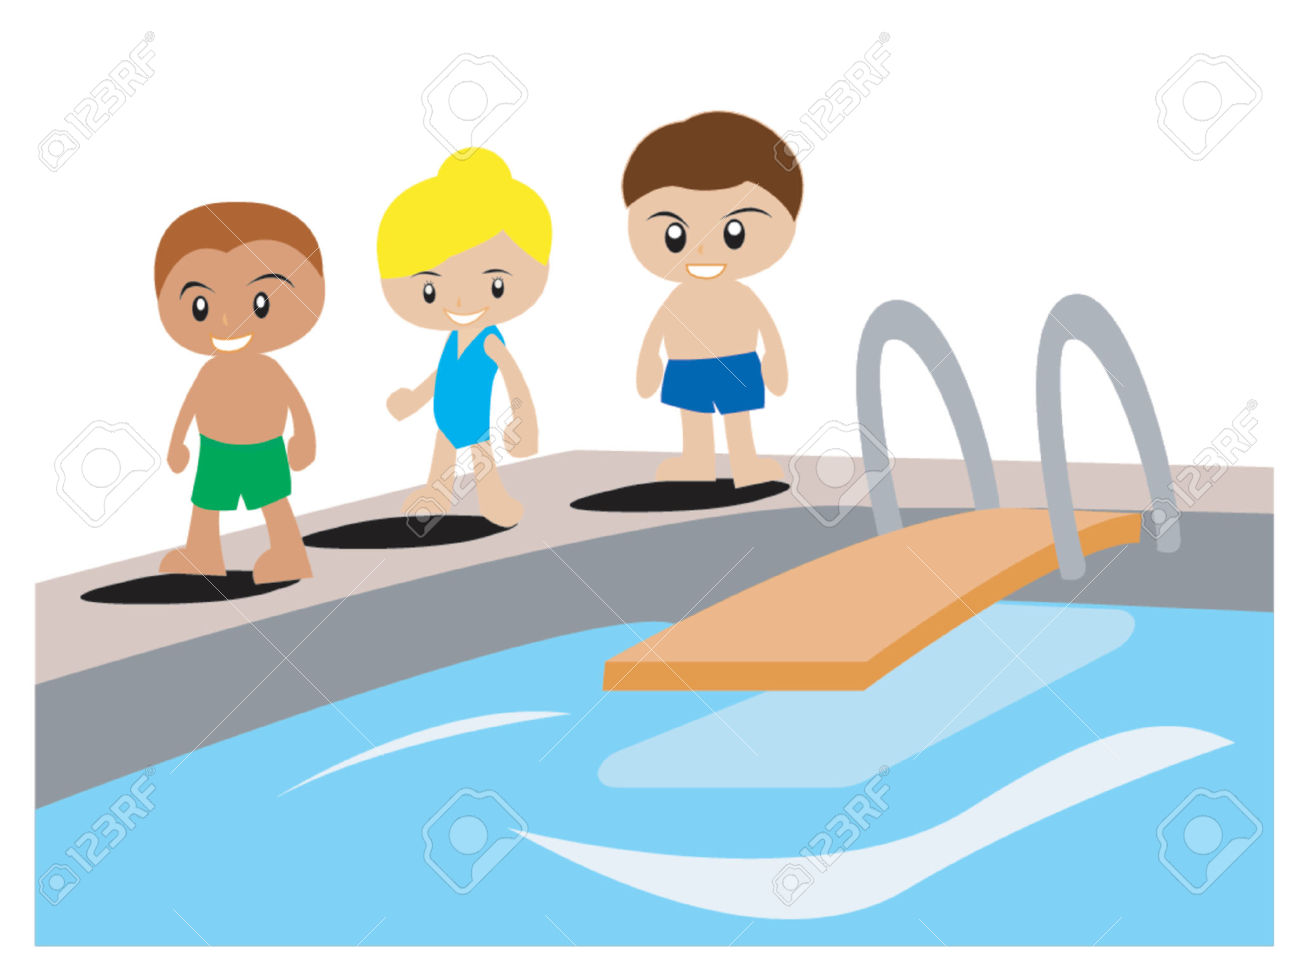 2 girls and 1 boy swimming in the pool clipart - ClipartFest jpg library